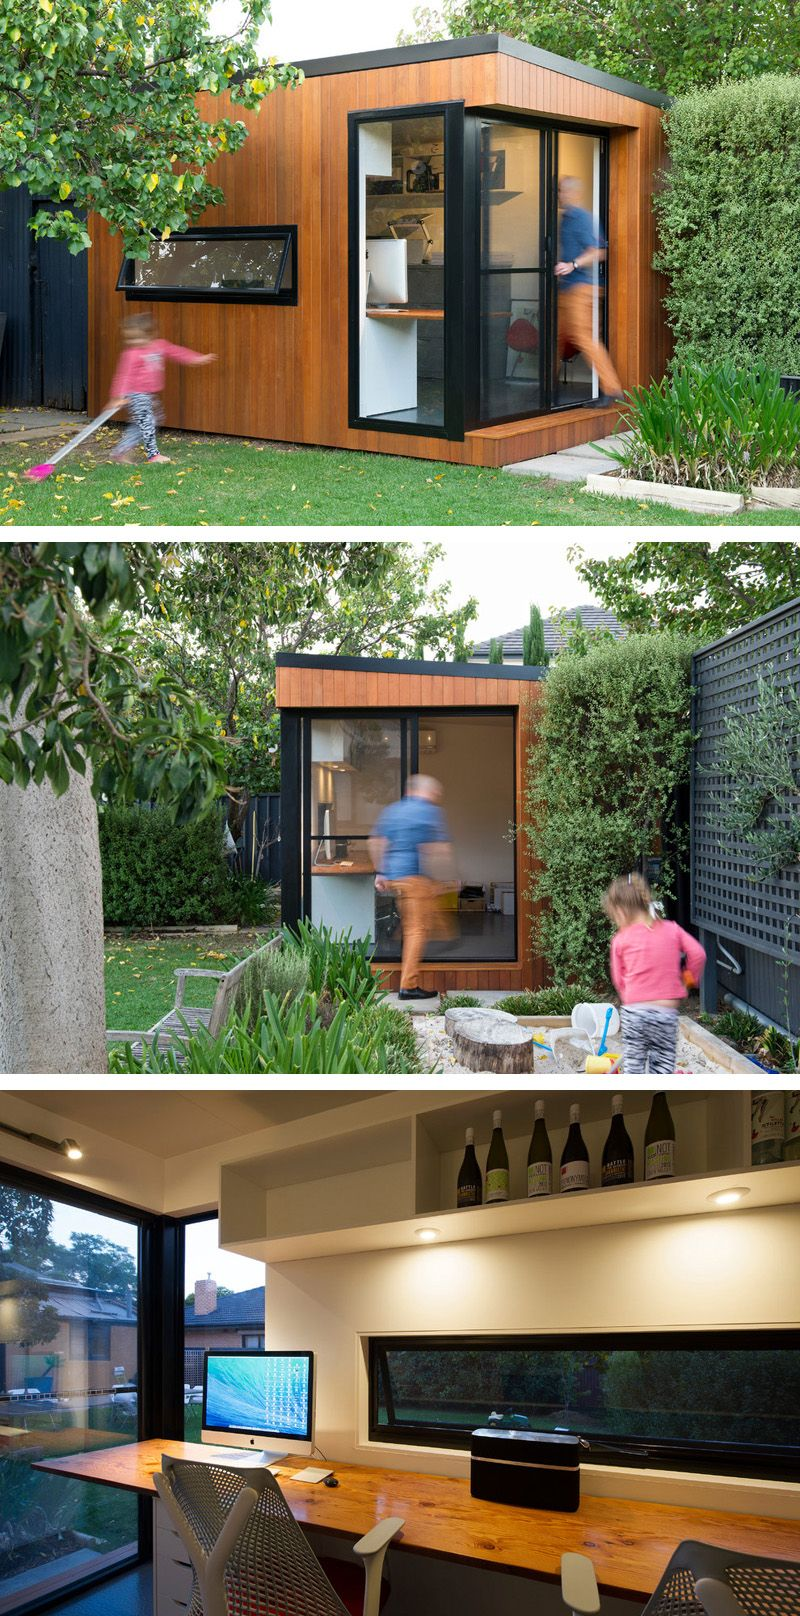 Shed | the glass office is a new design from decorated shed which ...